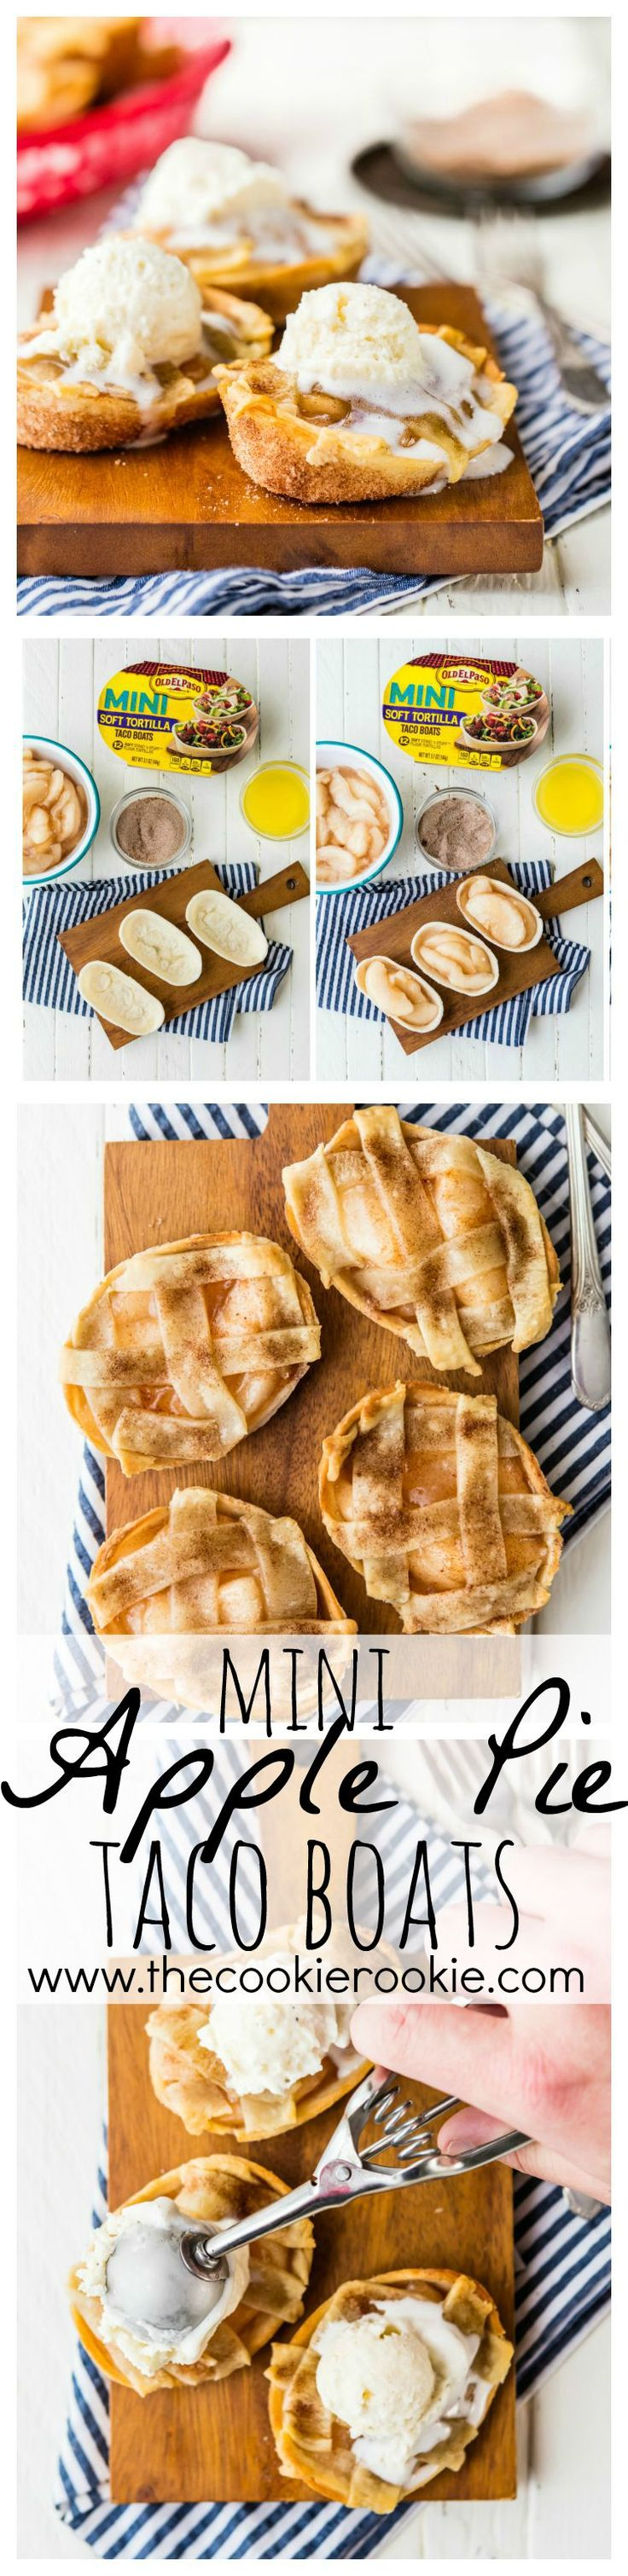 These Mini Apple Pie Taco Boats are made in under 30 minutes, full of flavor, and SO CUTE! Mini Taco Boats filled with apple pie filling and topped with pie crust. Oh and covered in cinnamon sugar for the win!